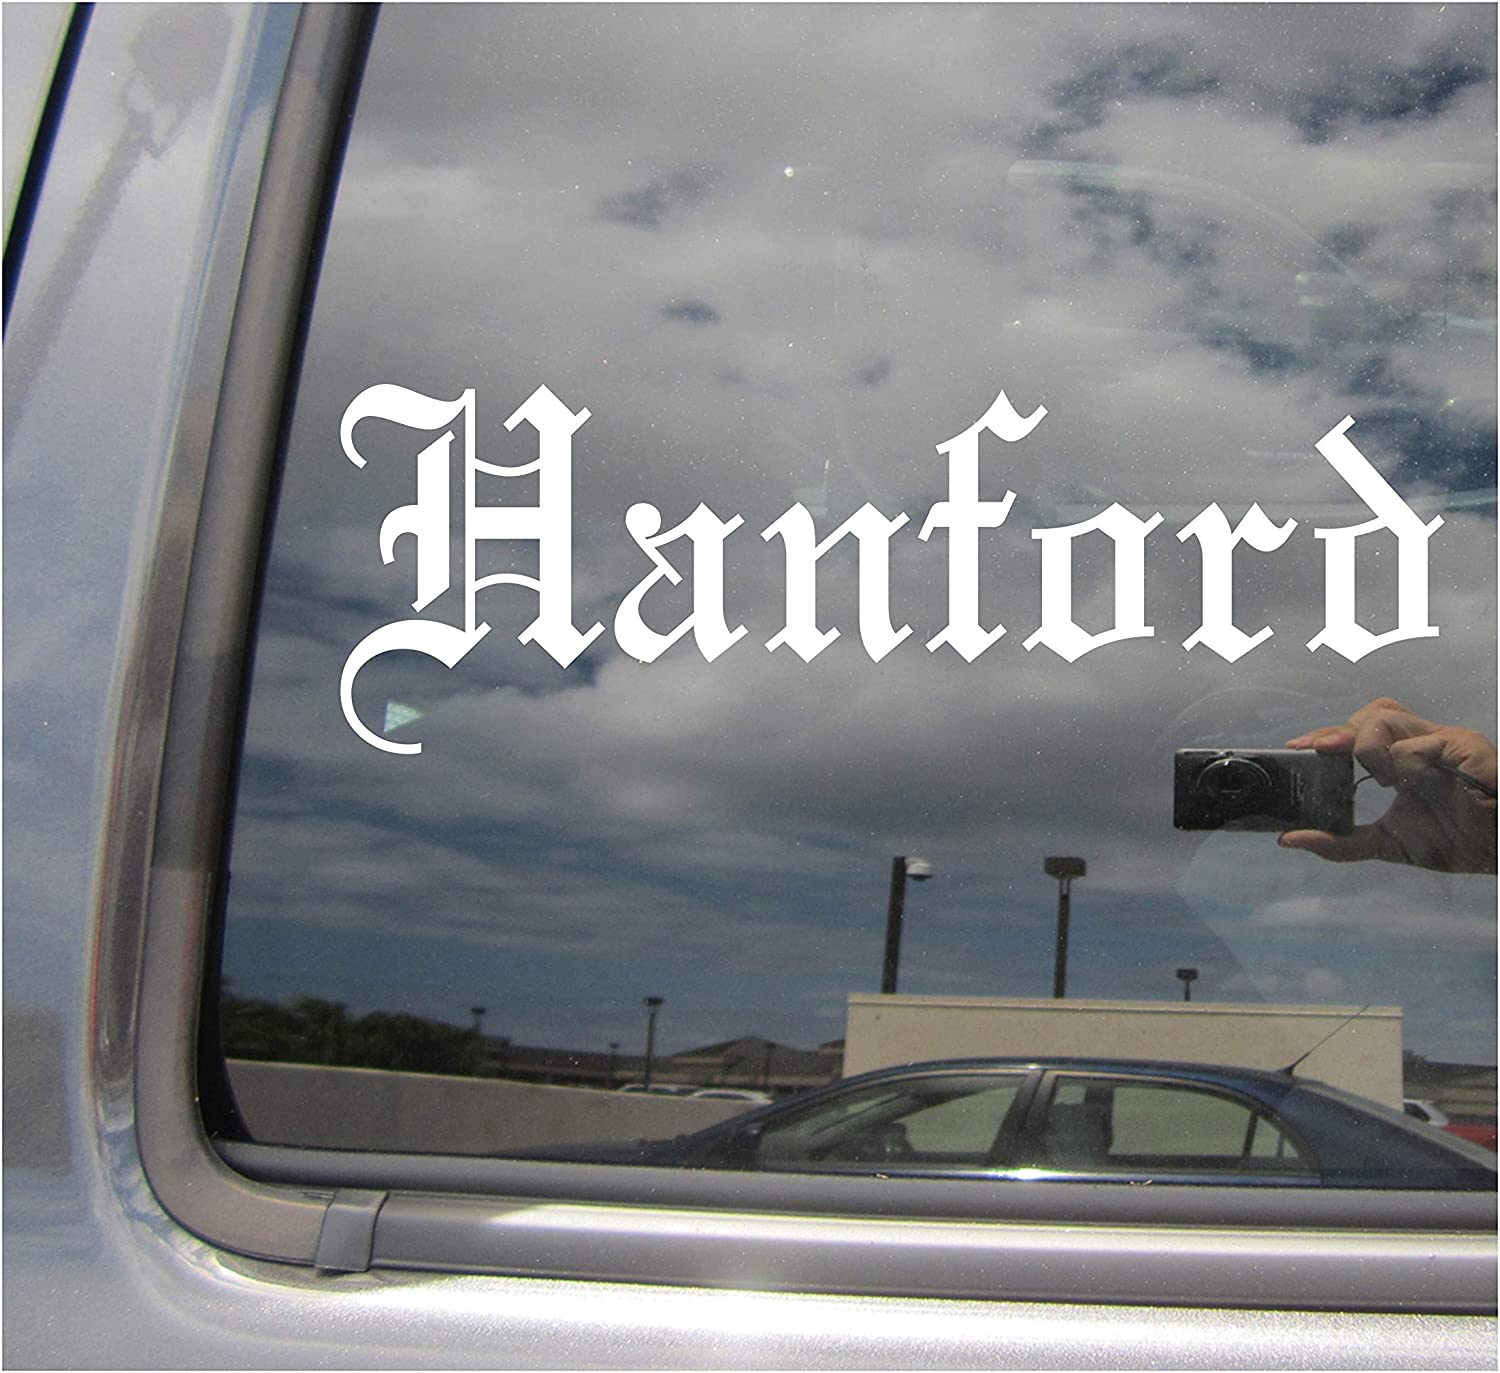 Hanford - California City Town County Old English Letters Car Truck Van Moped Helmet Hard Hat Auto Automotive Craft Cup Laptop Vinyl Decal Bumper Window Wall Sticker 18156